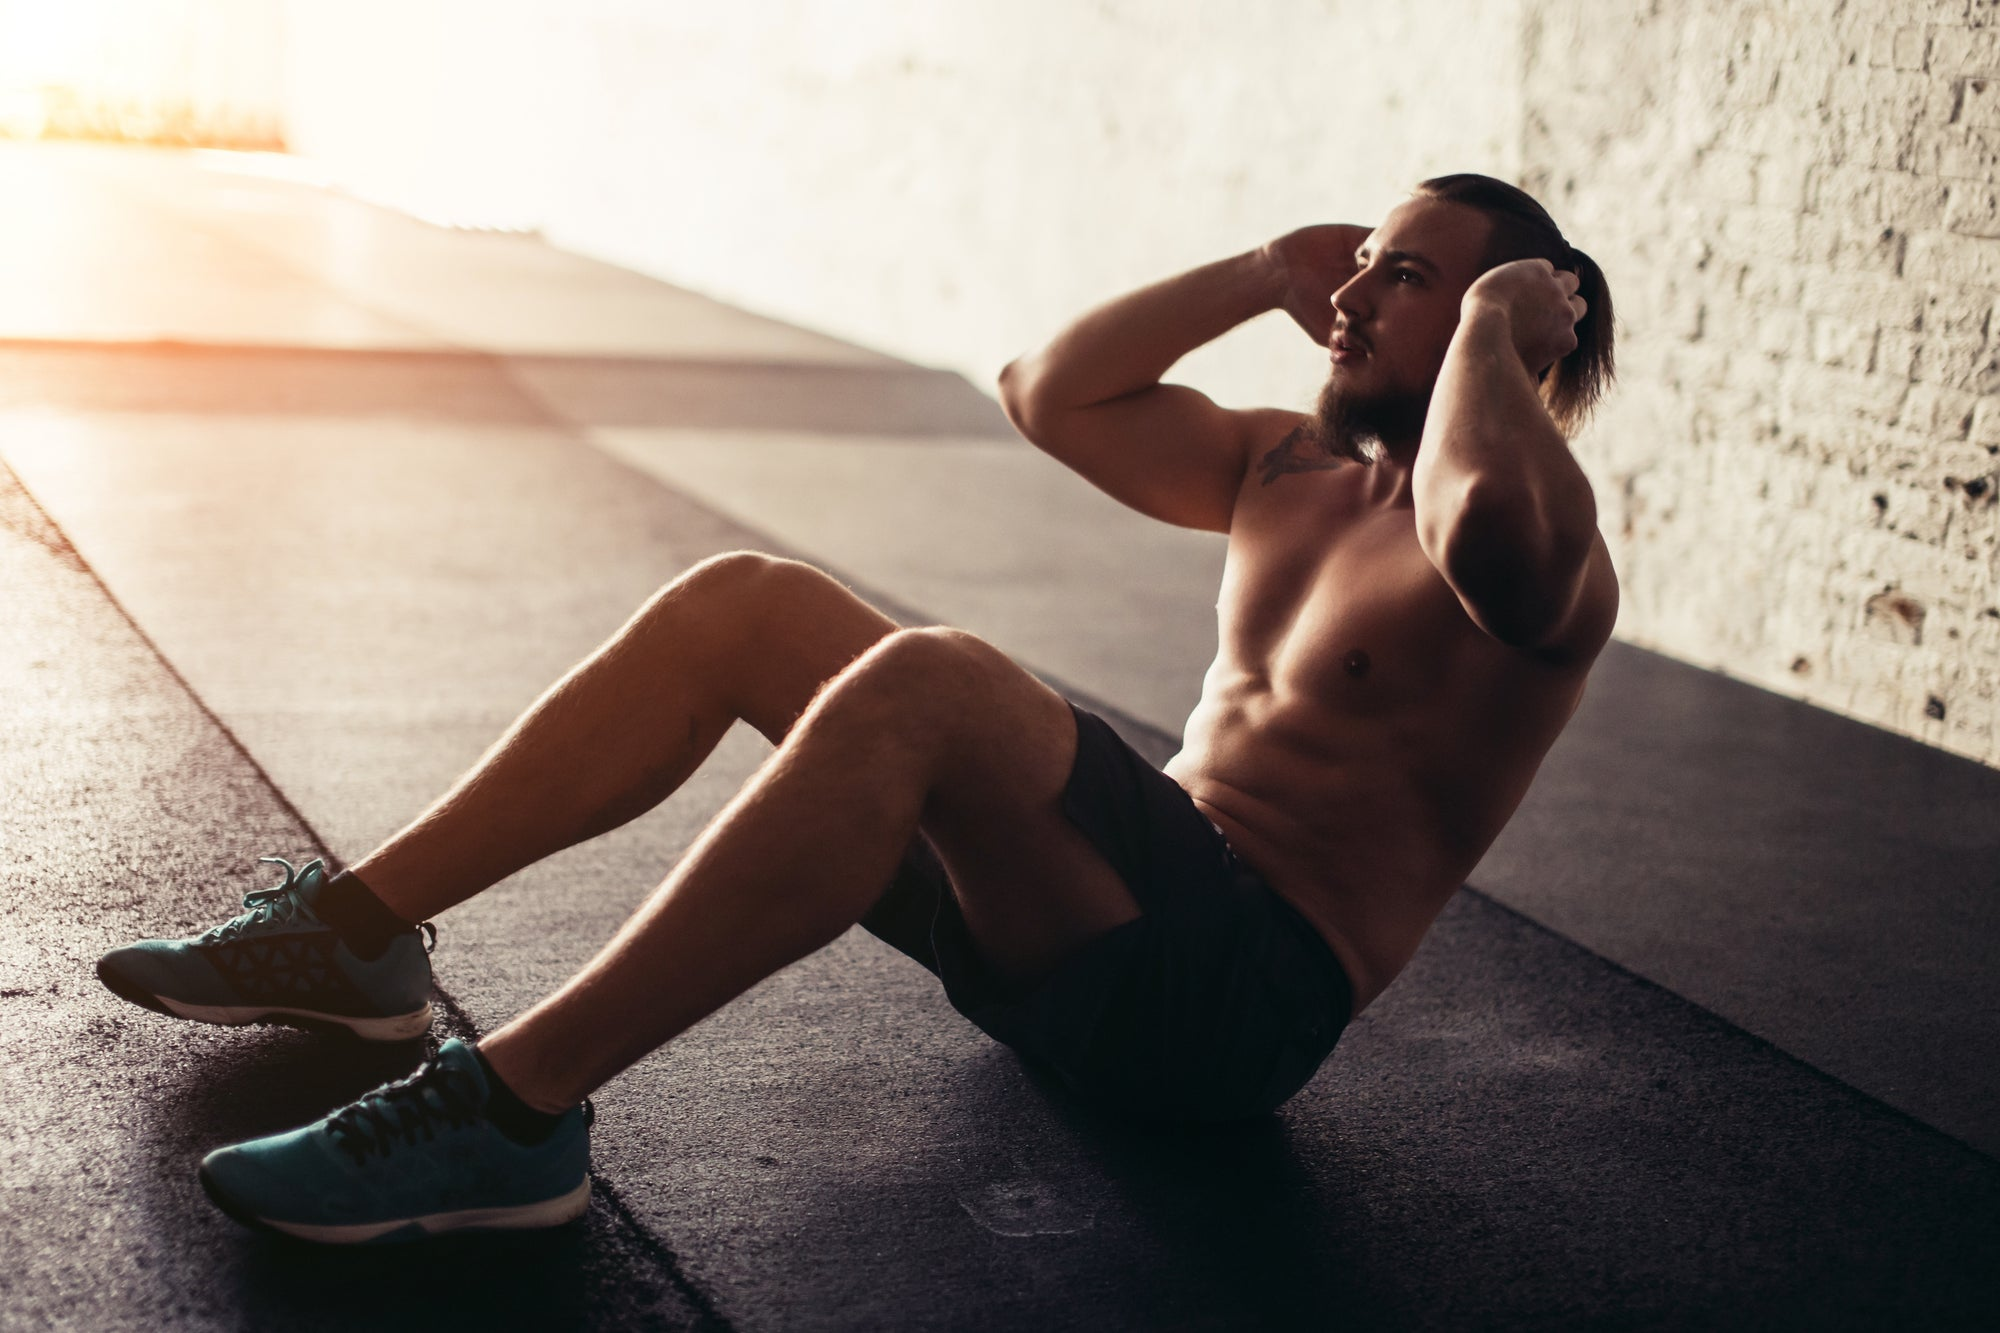 The Proper Way to Do Crunches (With NO Neck Pain)